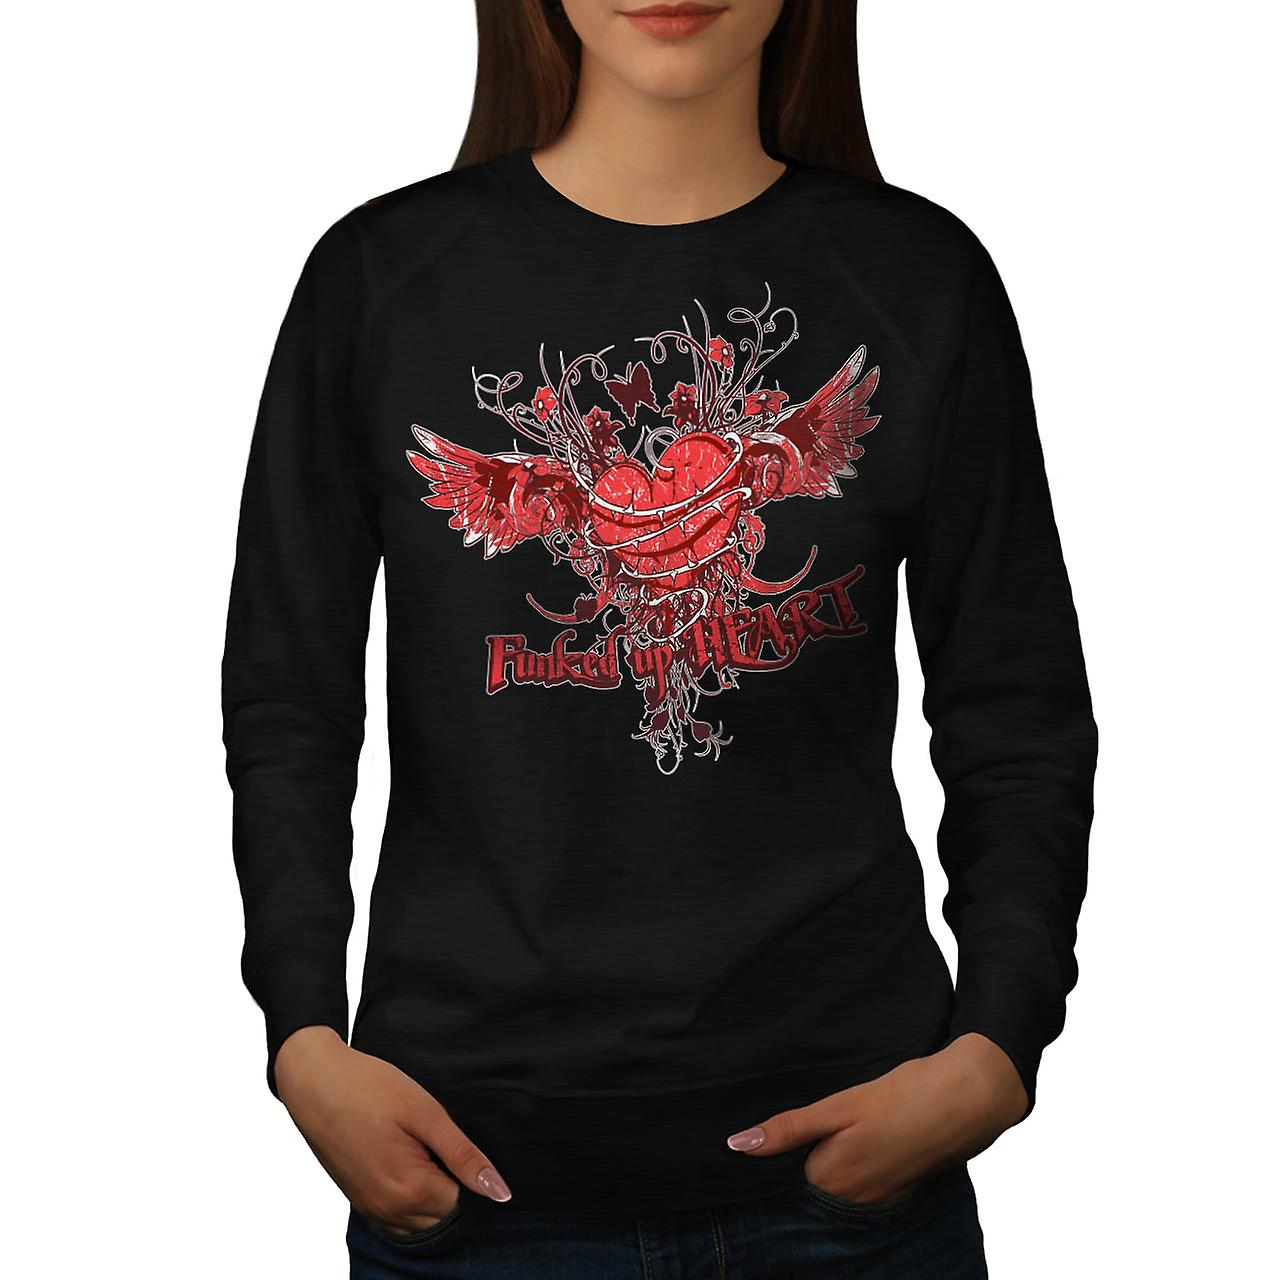 Funked Up Heart Love Thorn Rose Women Black Sweatshirt | Wellcoda